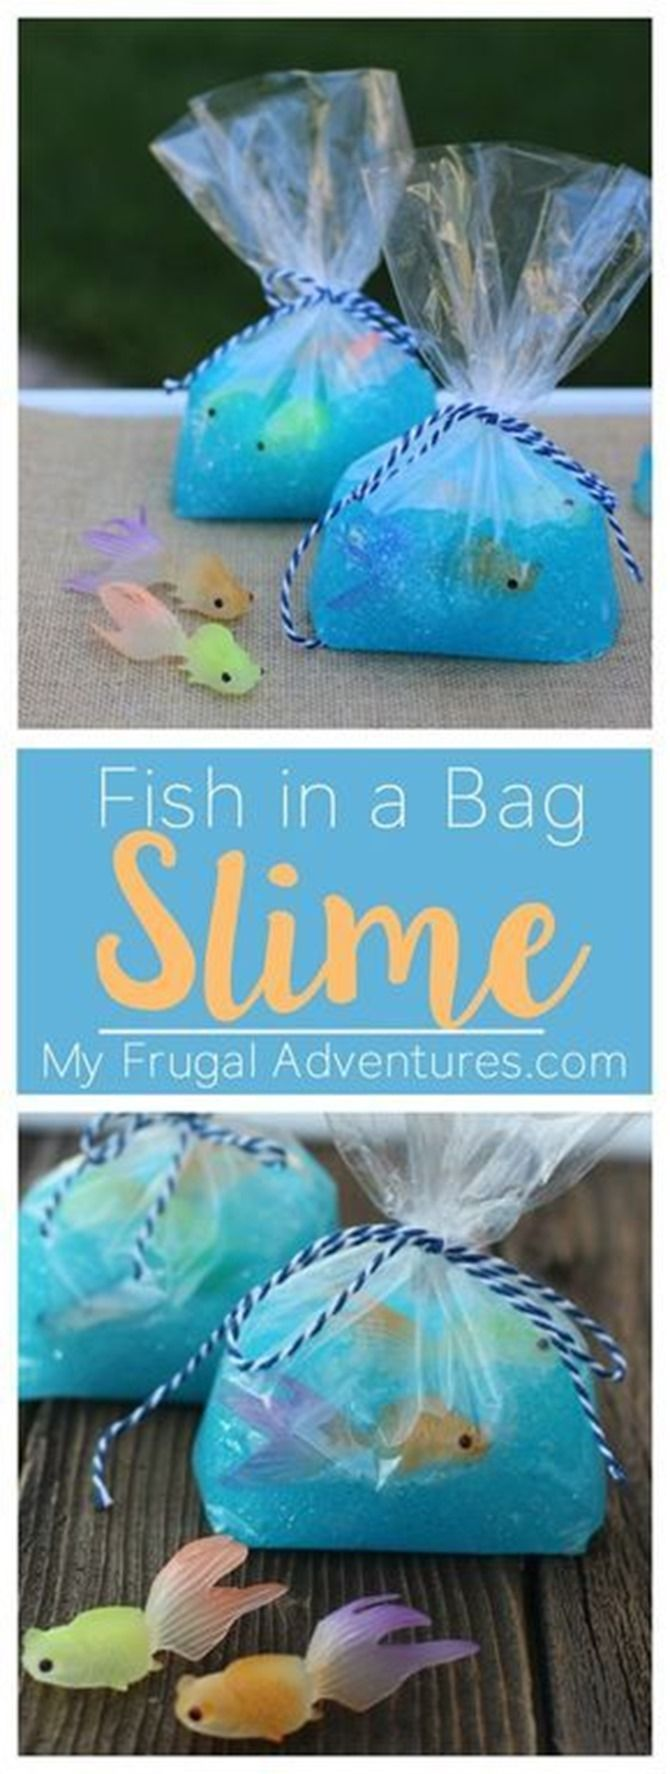 12 DIY Slime Recipes - Fish in a Bag Tutorial